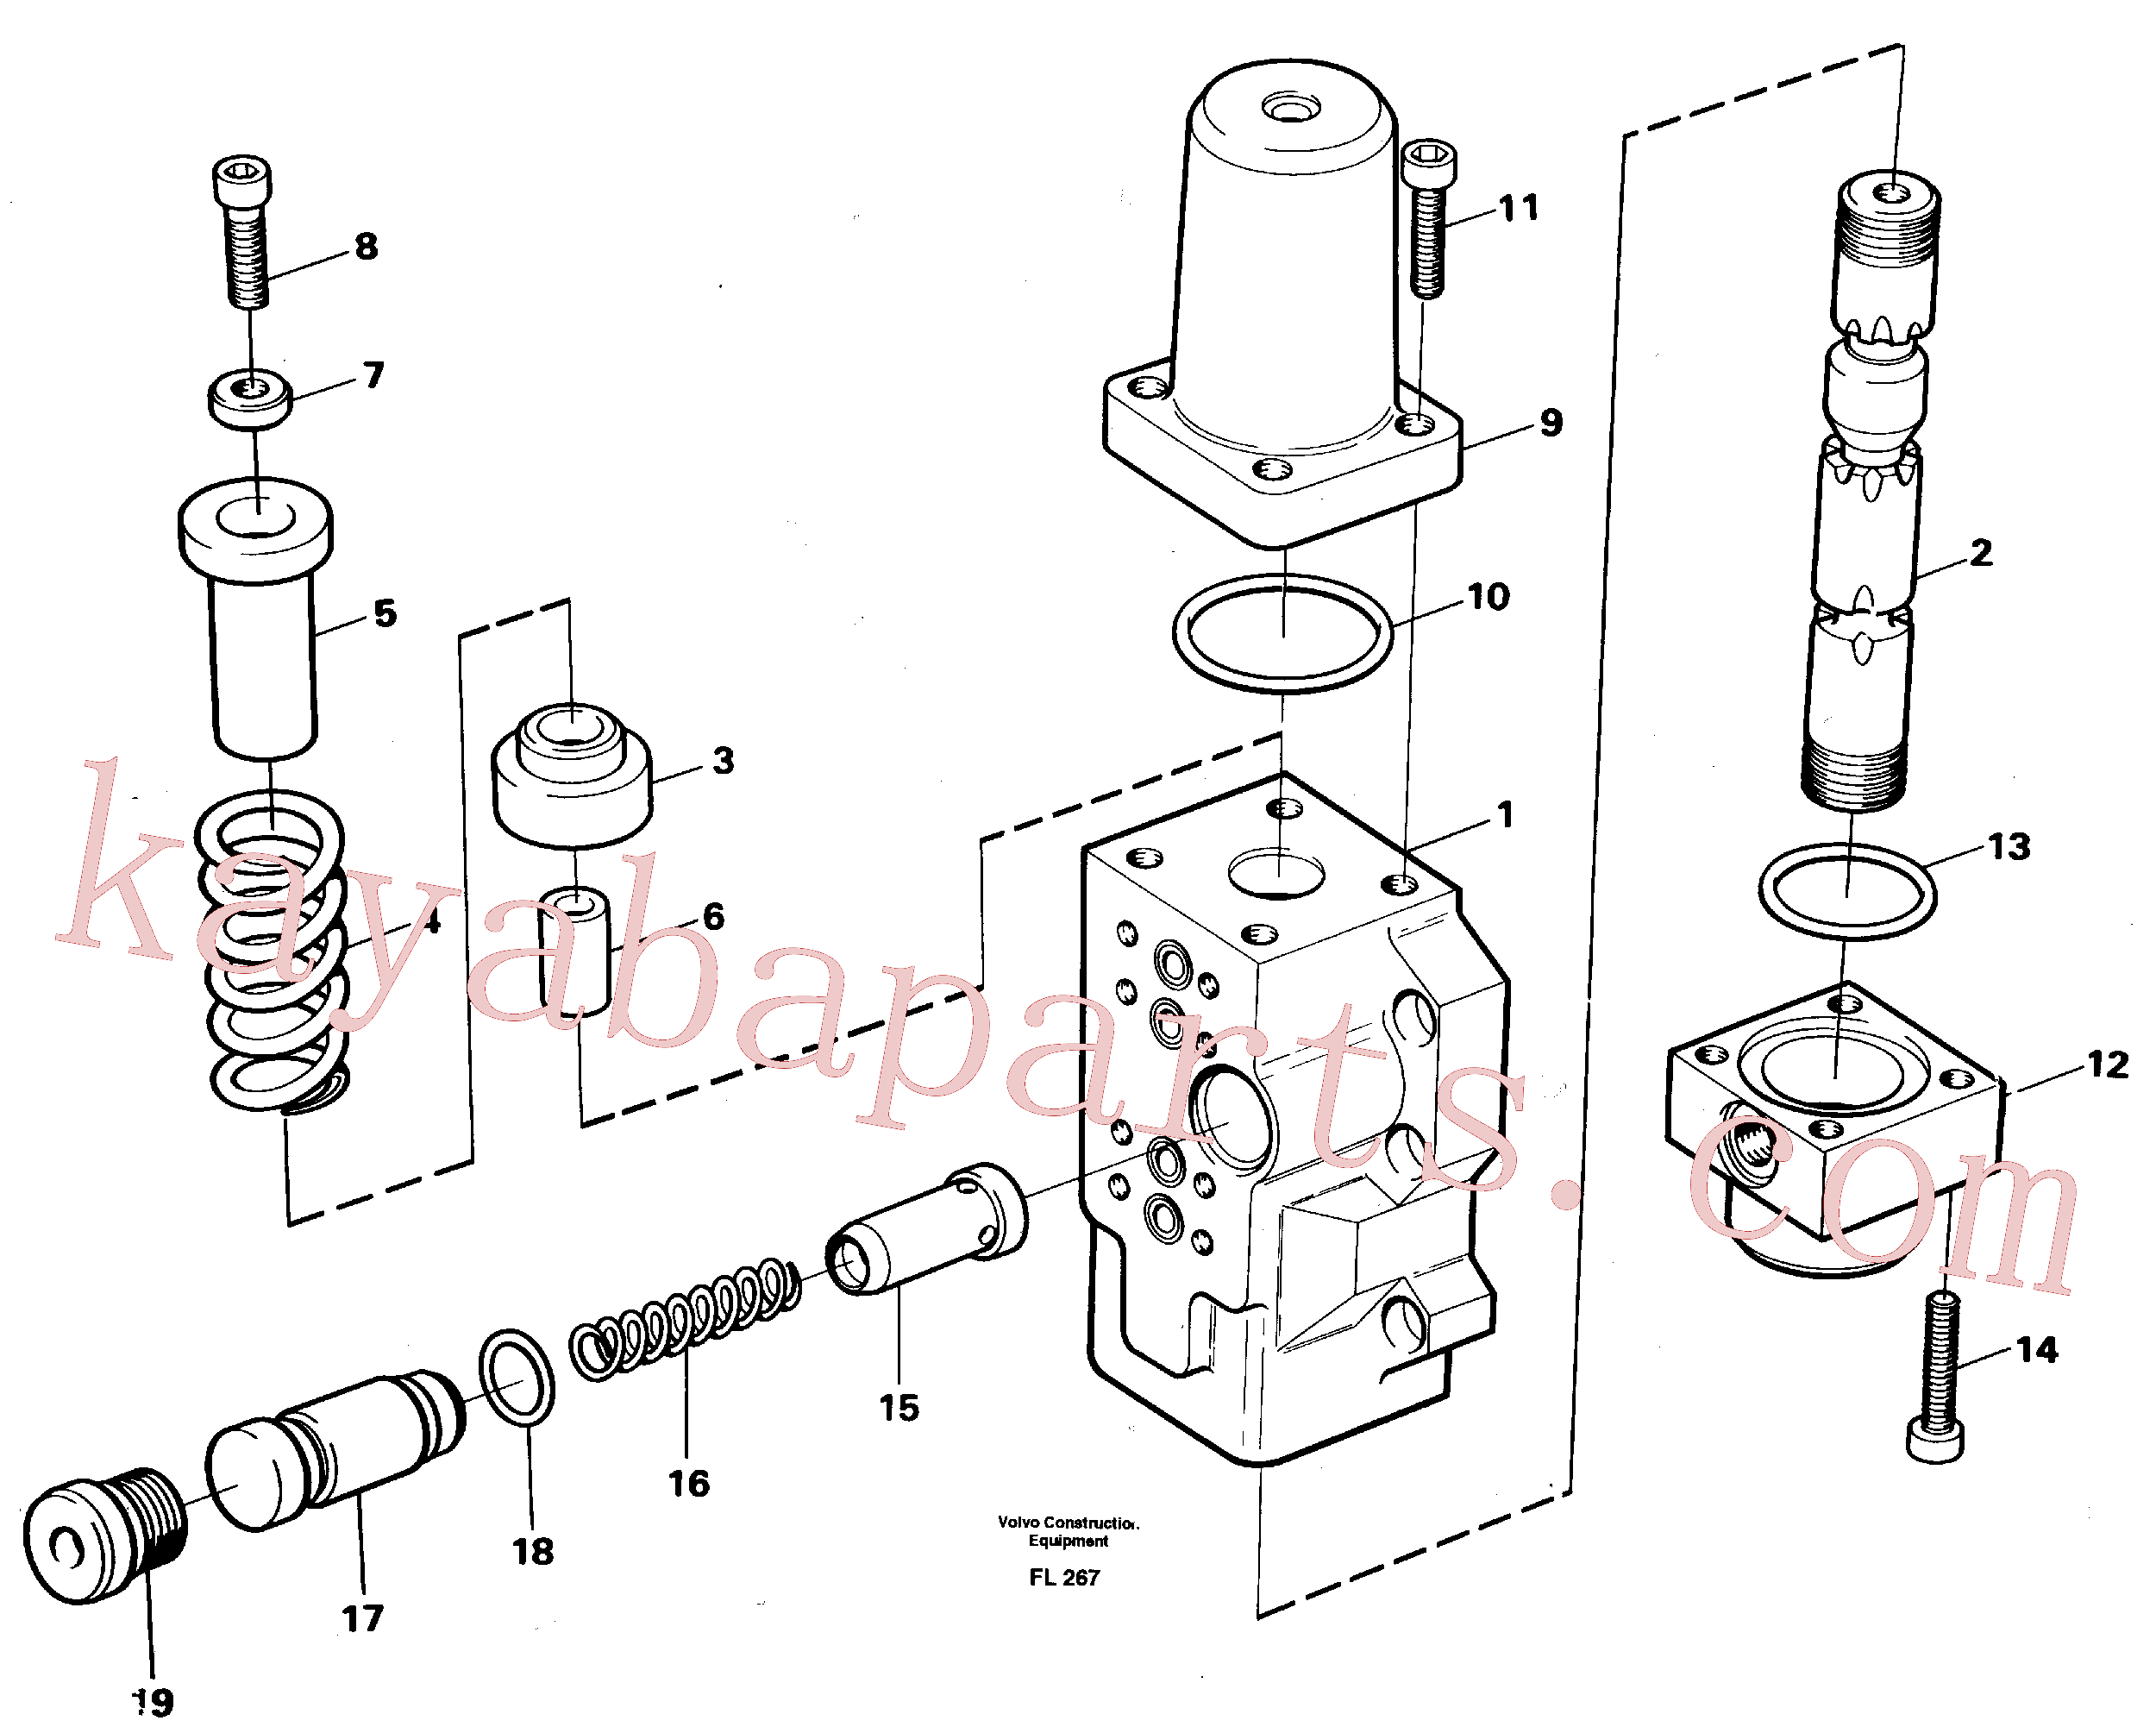 VOE959263 for Volvo Fourway valve, transport primary and secondary(FL267 assembly)